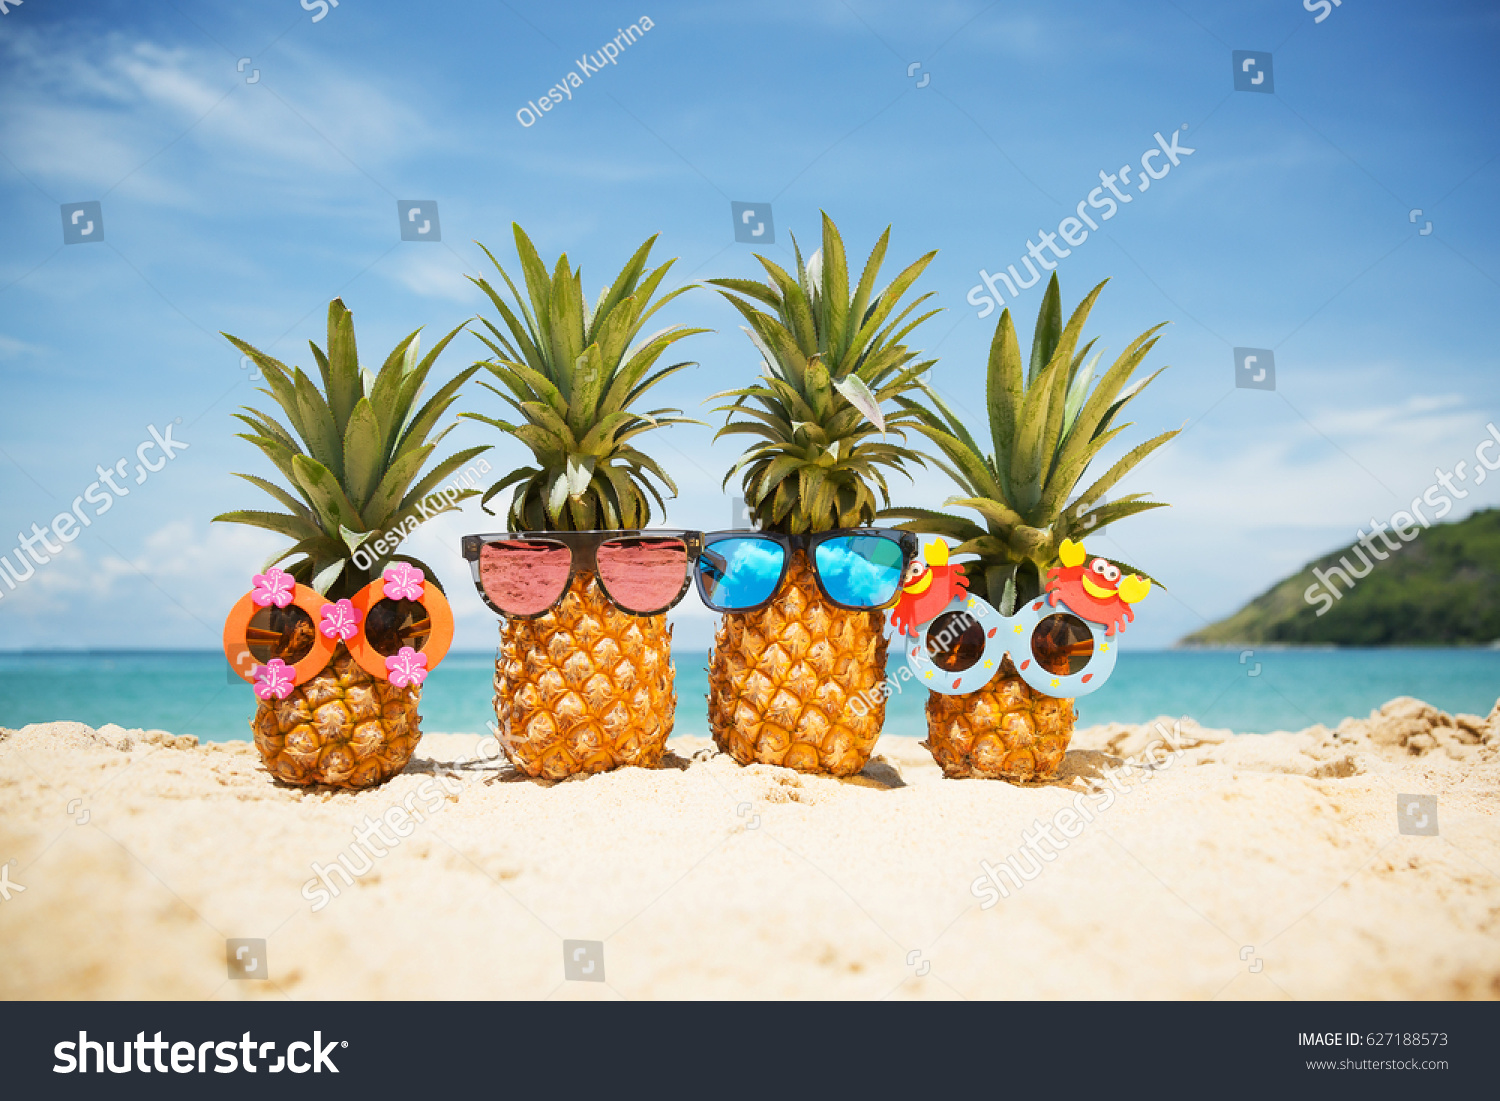 Family of funny attractive pineapples in stylish sunglasses on the sand against turquoise sea. Tropical summer vacation concept. Happy sunny day on the beach of tropical island. Family holiday #627188573